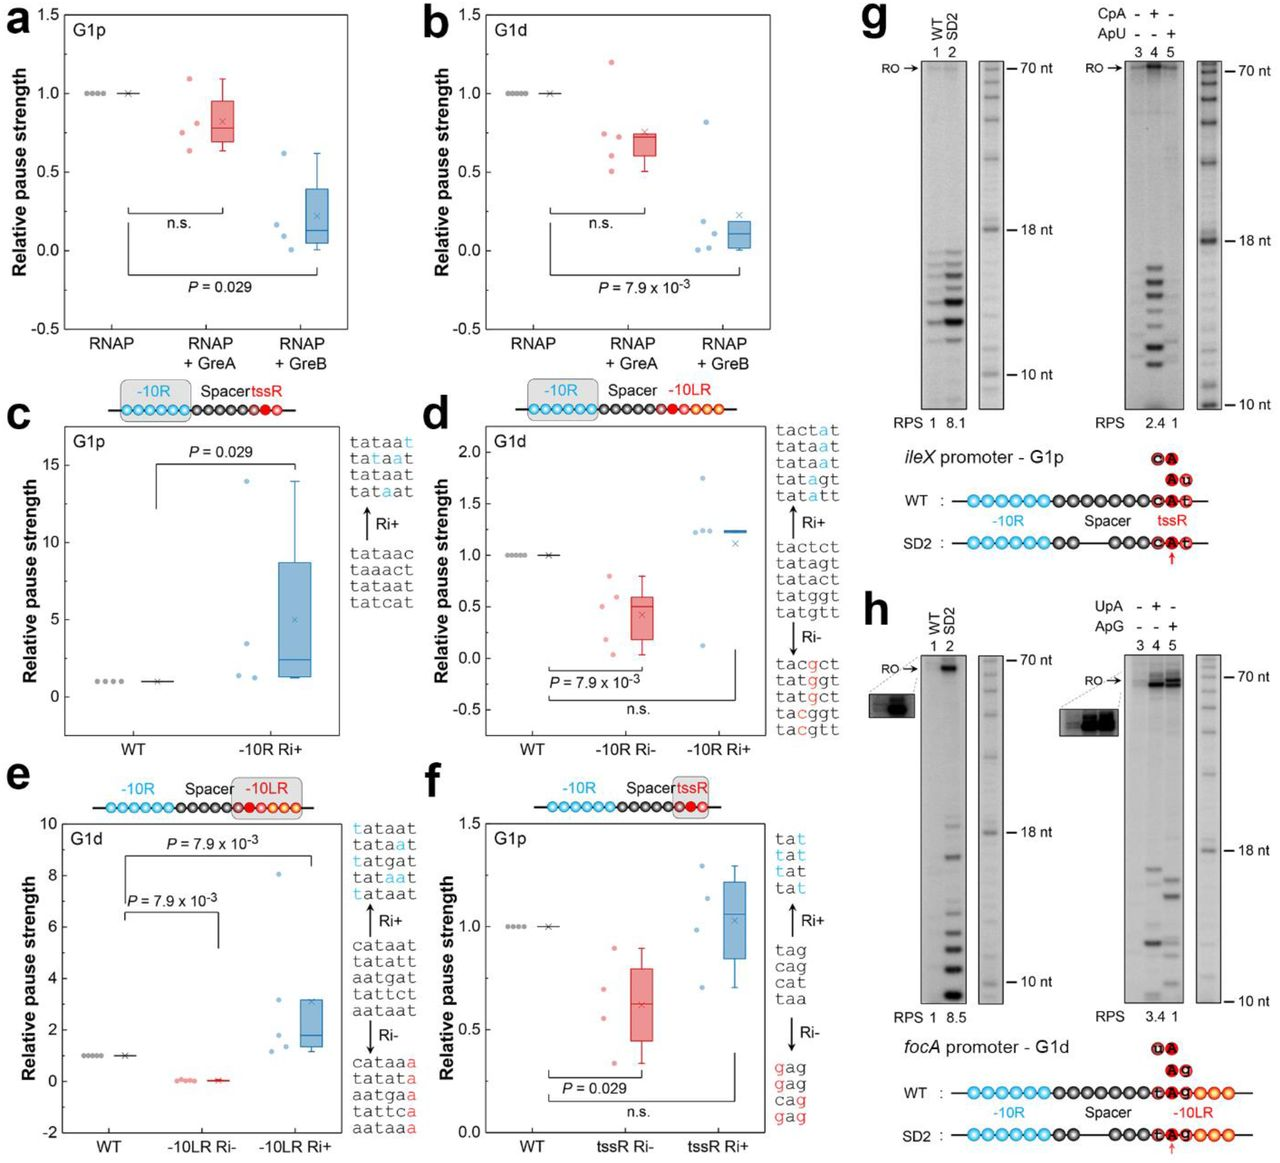 -10R, spacer length and tssR/-10LR determine G1p and G1d pauses in vitro . Boxplots of pause strength for G1p (a) and G1d (b) pauses in the absence and presence of GreA or GreB. G1p ( exuR , mraZ , ileX and mocA ) and G1d ( yieE , minC , gadW , mrdB and artP ) promoters were used for the analysis. The pause strength was determined by dividing the signal intensity of run-off and paused RNA products to the signal intensity of paused RNA product in the gel for each in vitro template (Pause strength = Signal intensity[paused RNA]/(Signal intensity[paused RNA] + Signal intensity[run-off])). The pause strength in the absence of Gre factors was taken as 1 (a, b) . Boxplots show the effect on pause strength of −10R and tssR mutations in G1p promoters (c, f) , and −10R and −10LR mutations in G1d promoters (d, e) . Pause strength of the WT promoters was set to 1 (c, d, e, f) . −10R (−10LR; tssR) Ri-/Ri+, mutated −10R (−10LR; tssR) with decreased or increased Ri are indicated. The grey rectangle in each cartoon represents the motif used for mutation analysis. The original and mutated (colored in blue or red) DNA sequences designed to increase (Ri+) or decrease (Ri-) Ri are shown on the right in gene order. Two-tailed Mann-Whitney U -test was used for statistical analysis of the data. Effect of the spacer length on G1p (g) and G1d (h) pauses. The in vitro transcription was initiated on the WT template or on the mutant template with the shortened DNA spacer (left); different dinucleotide RNA primers overlapping the tssR were employed to alter the position of the TSS (right). The inset shows the run-off transcripts with higher exposure to visualize the faint bands. Structural elements of the WT and mutated promoters are shown on the bottom. Each circle represents a single nucleotide. Open blue circles, −10R; Dark red circle, overlapped nucleotide between spacer and tssR/-10LR; Open black and dark red circles, spacer; Red circles, tssR; Red and orange circles, −10LR; Filled red ci